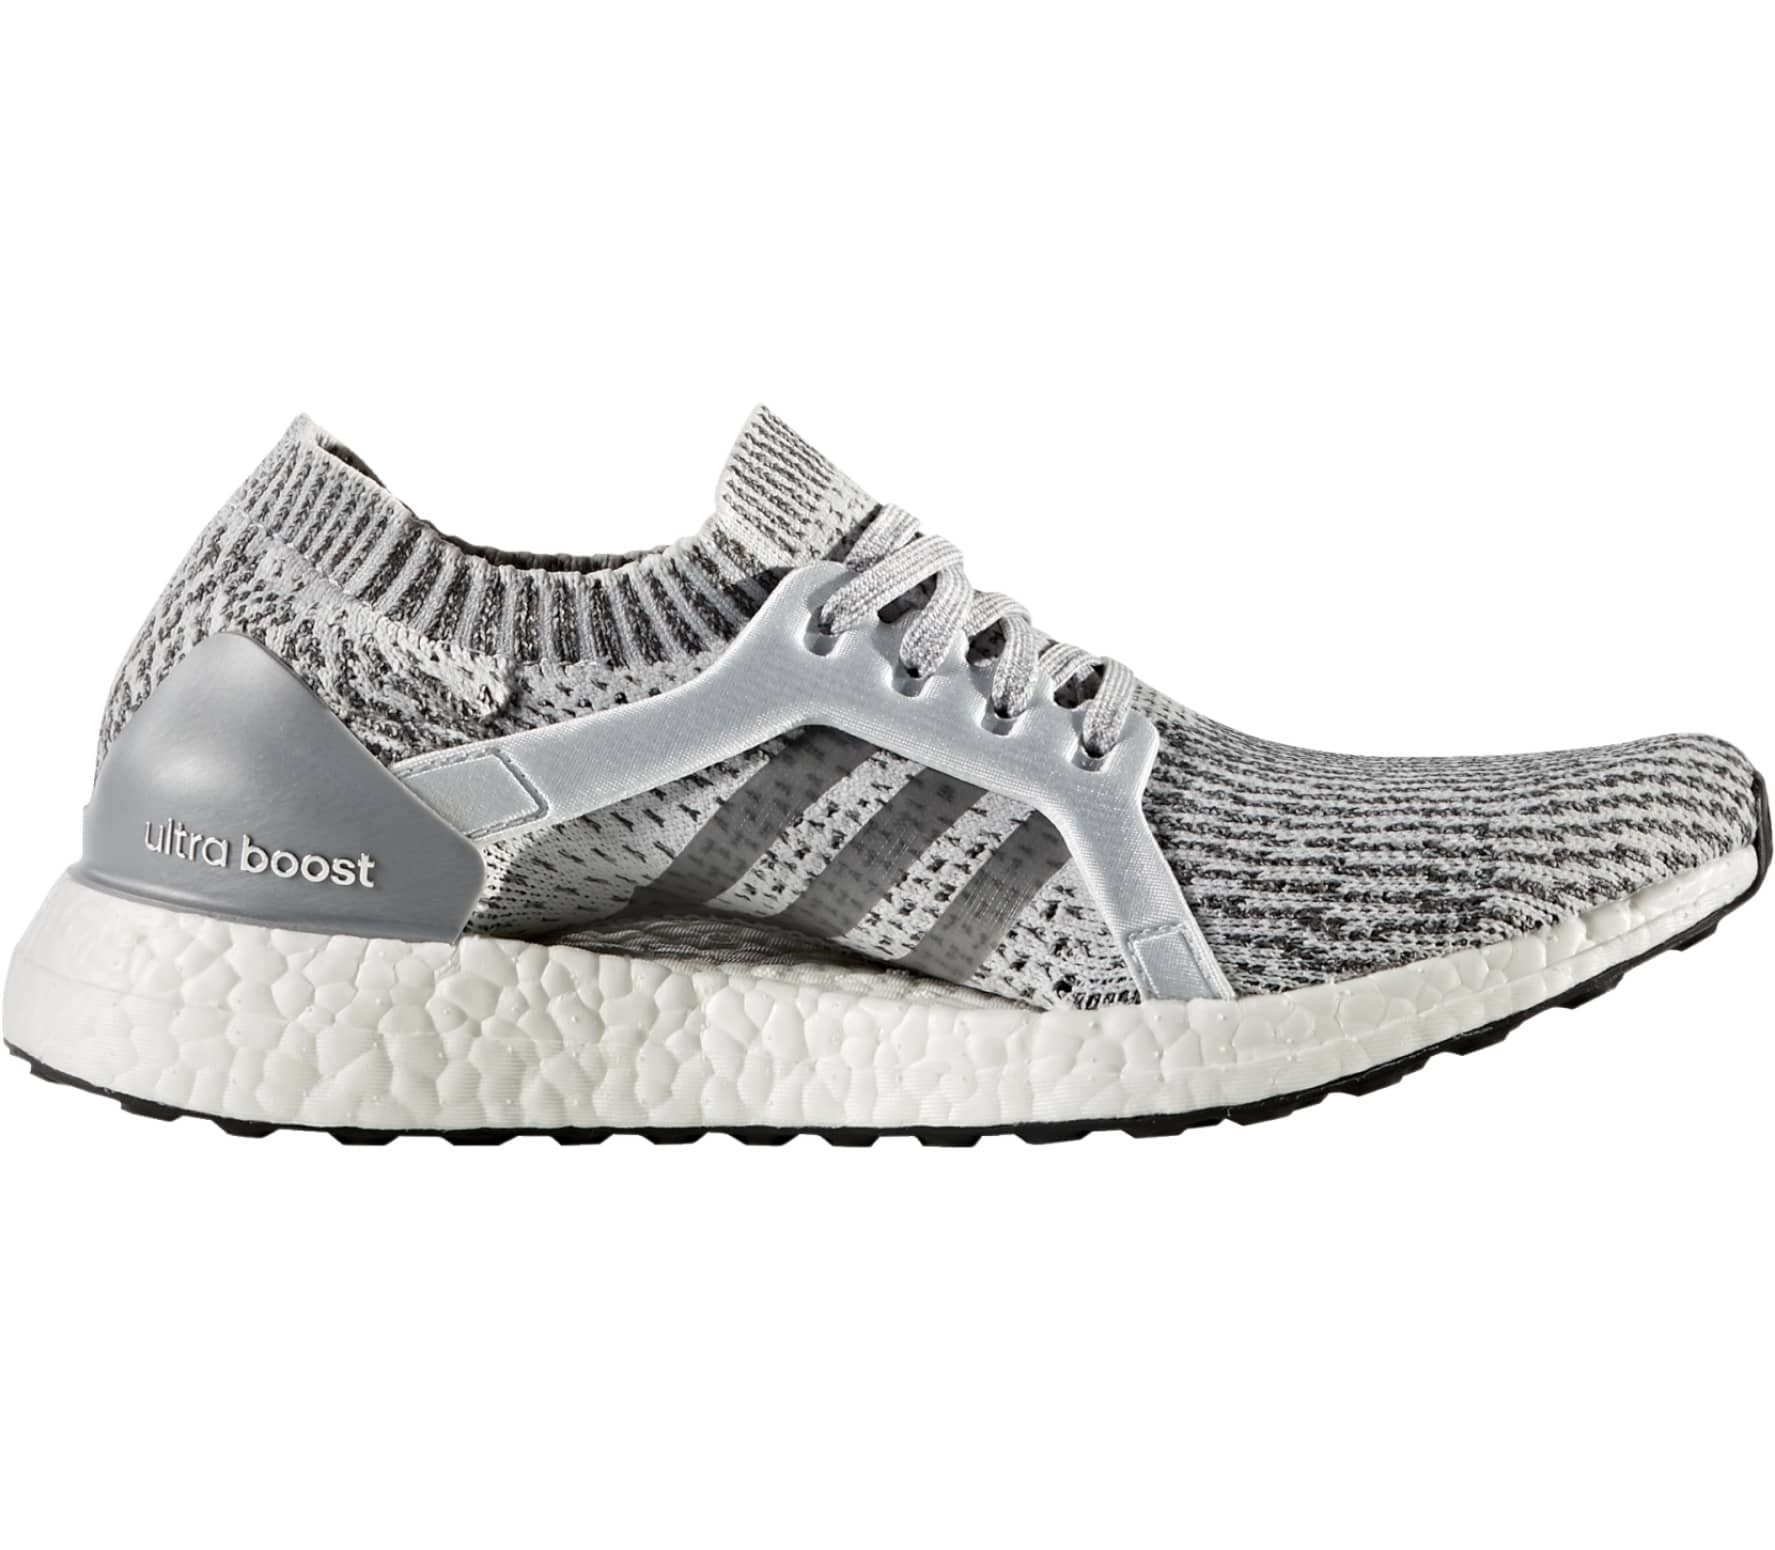 Adidas - Ultra Boost X women's running shoes (grey/white)